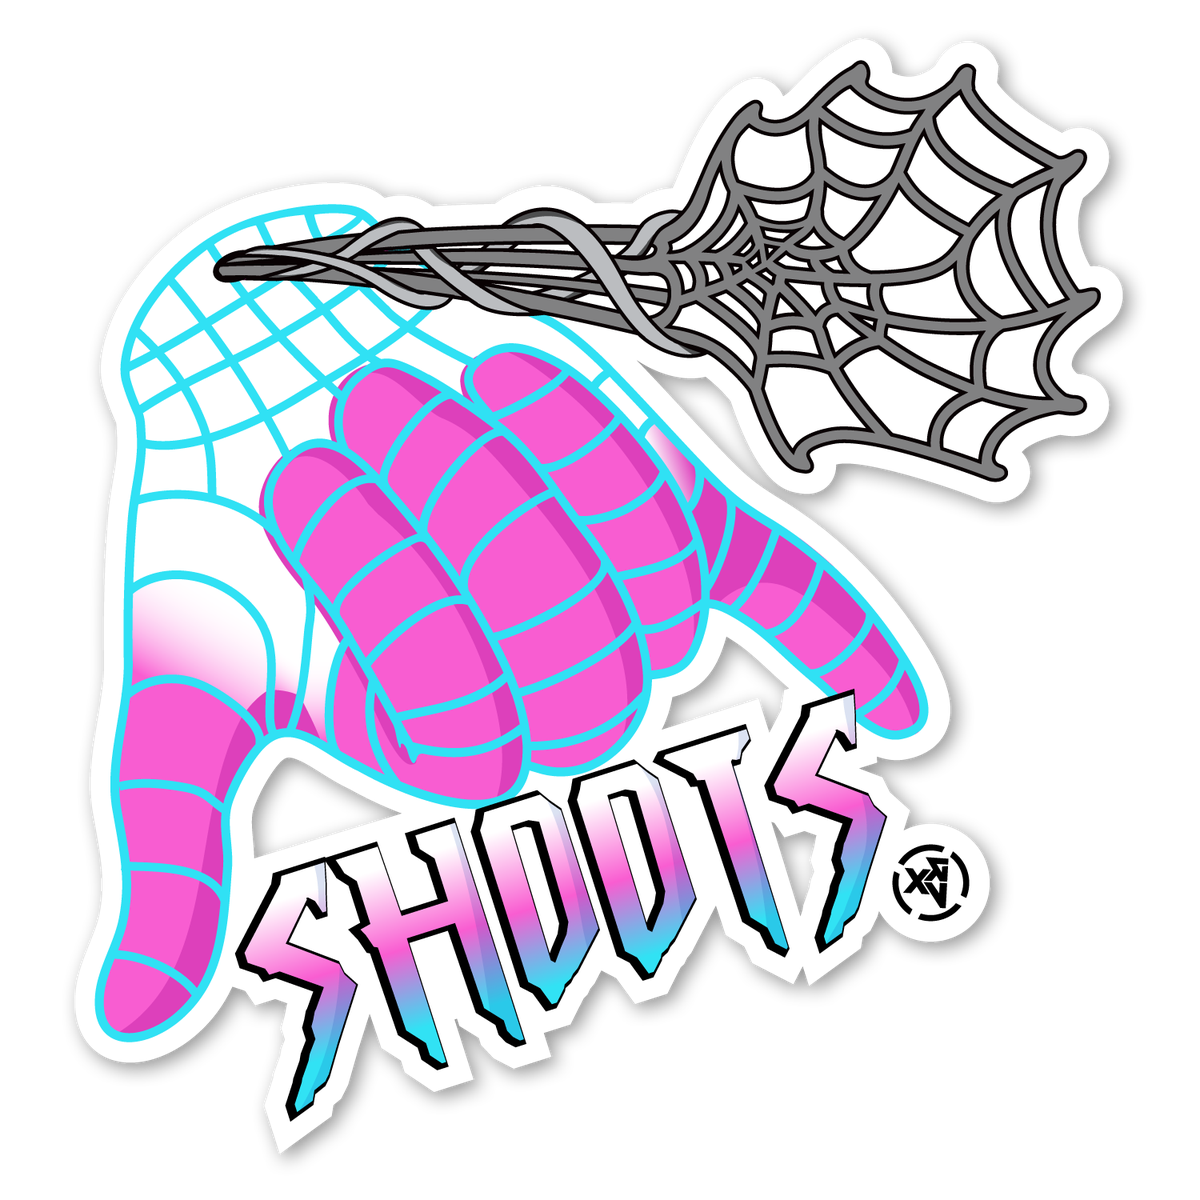 Image of Spidey Shoots - Gwen